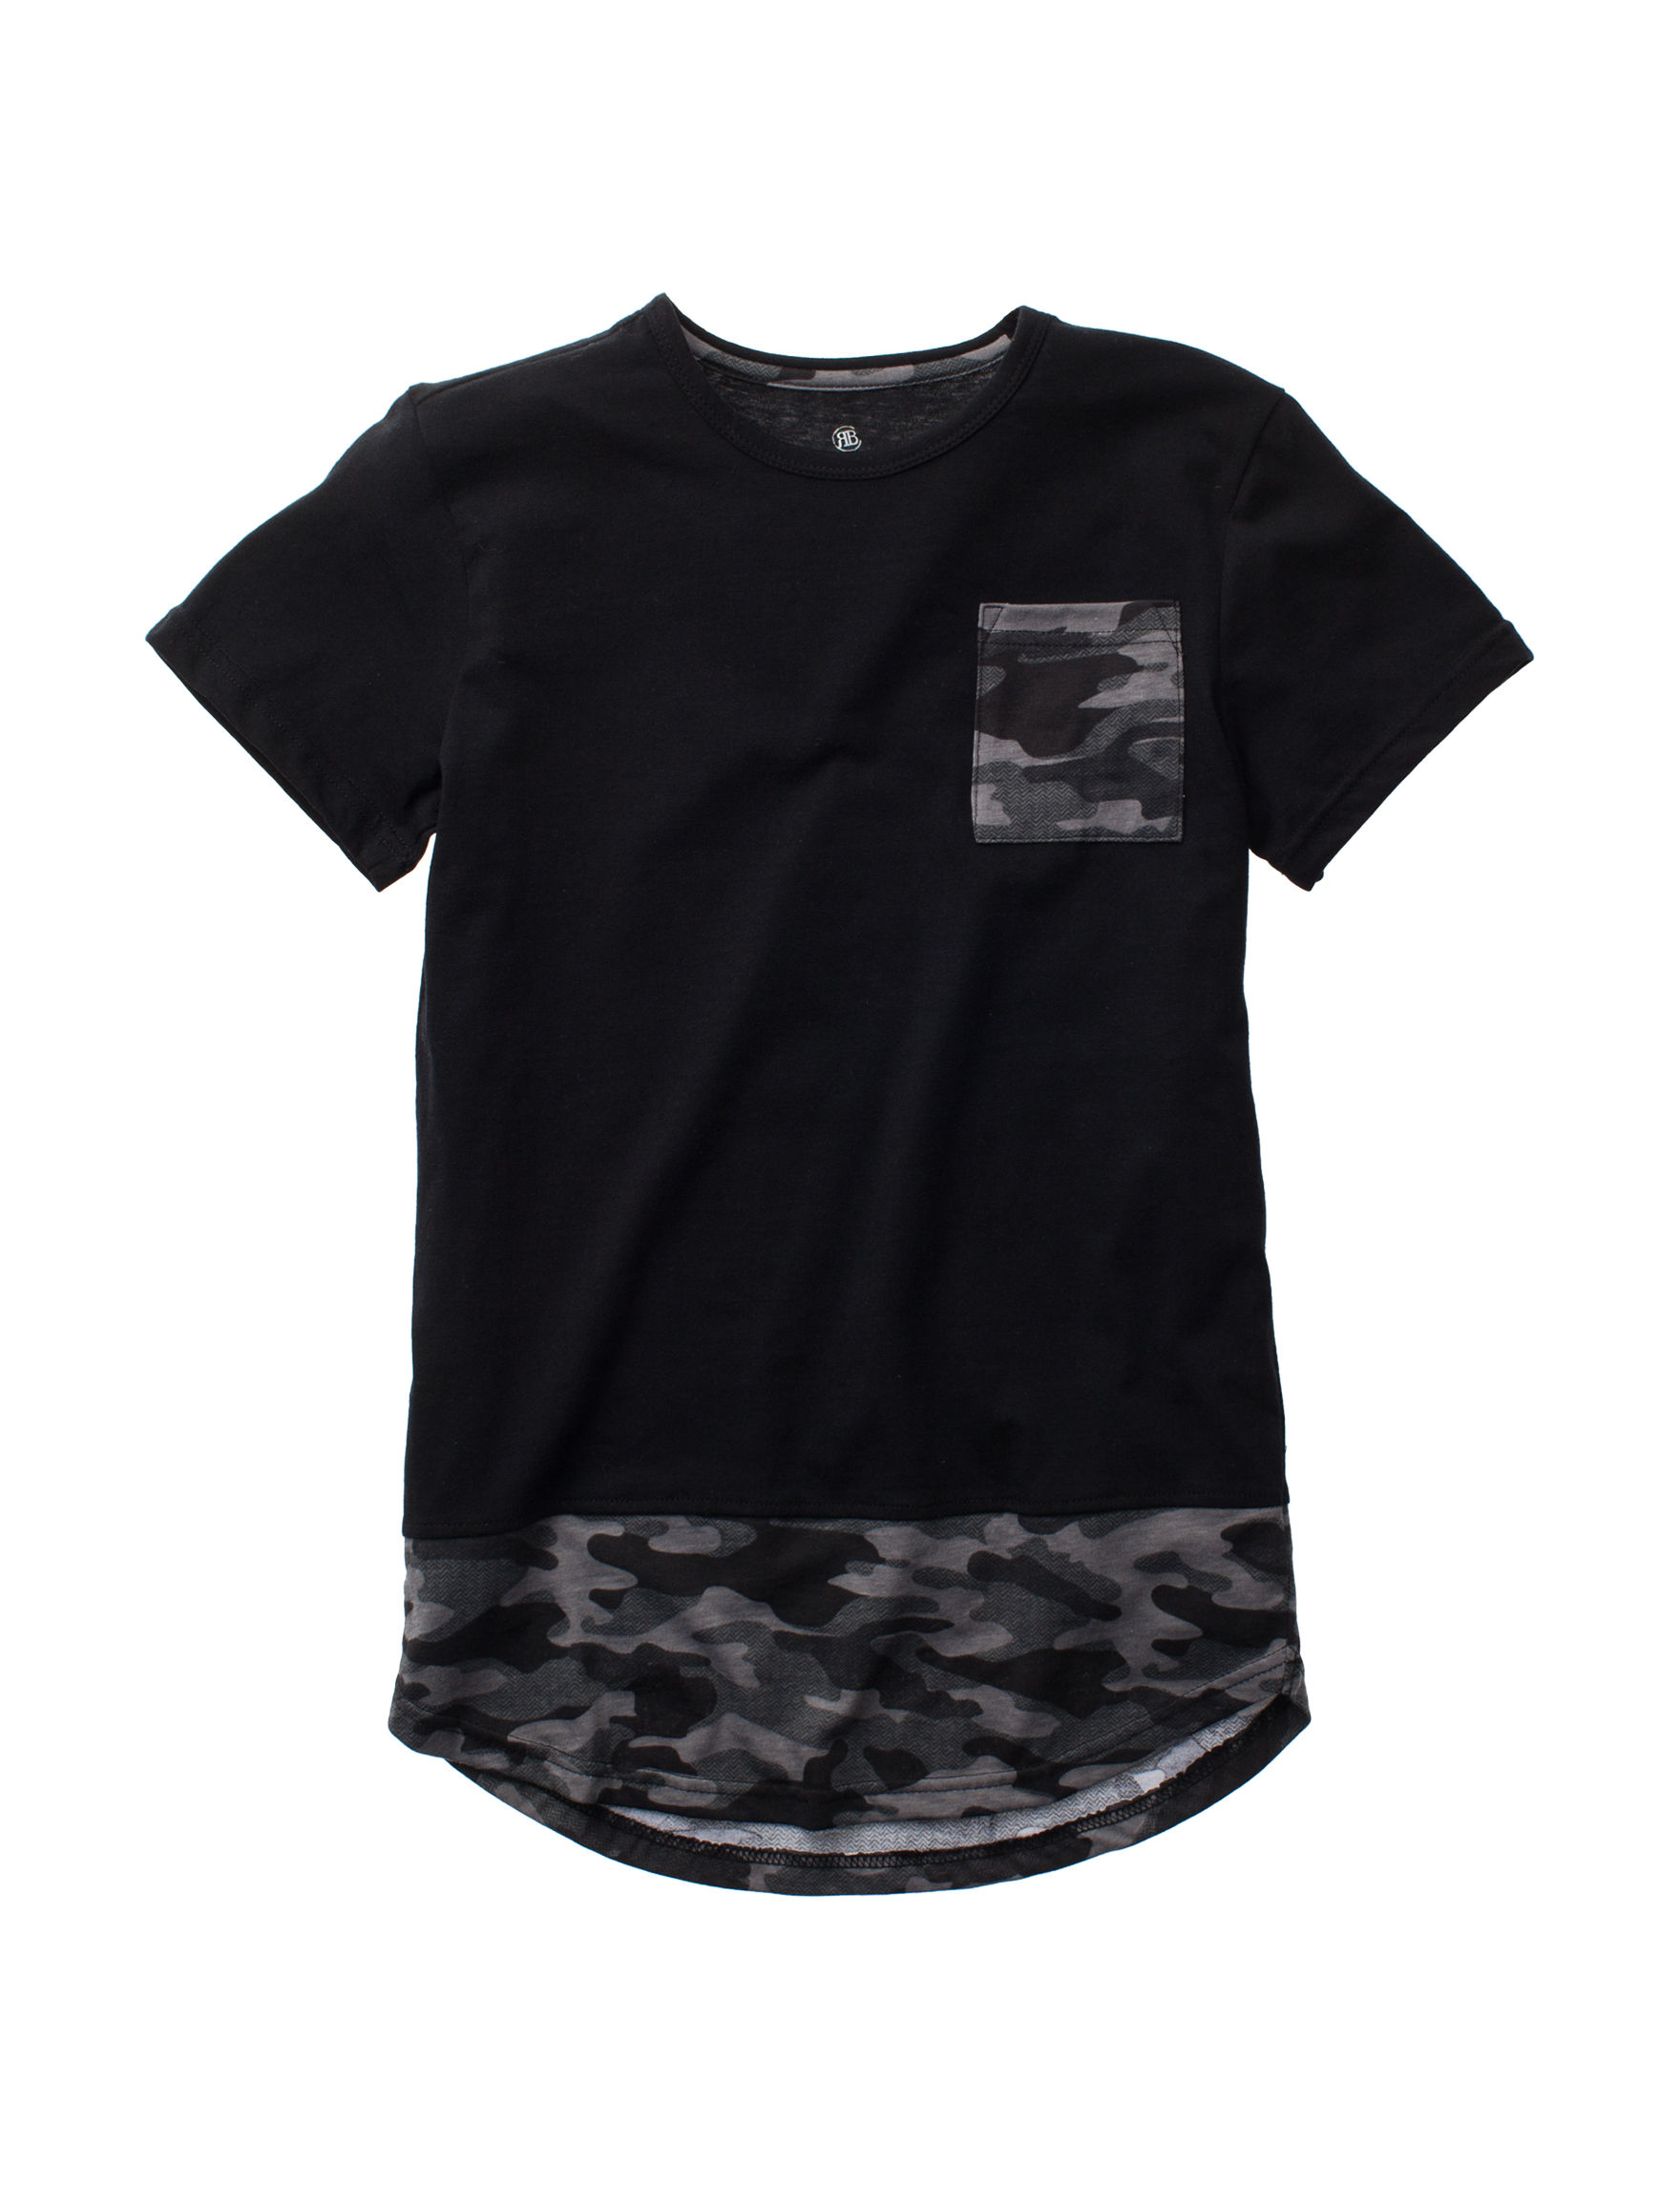 Rustic Blue Black/Camo Tees & Tanks